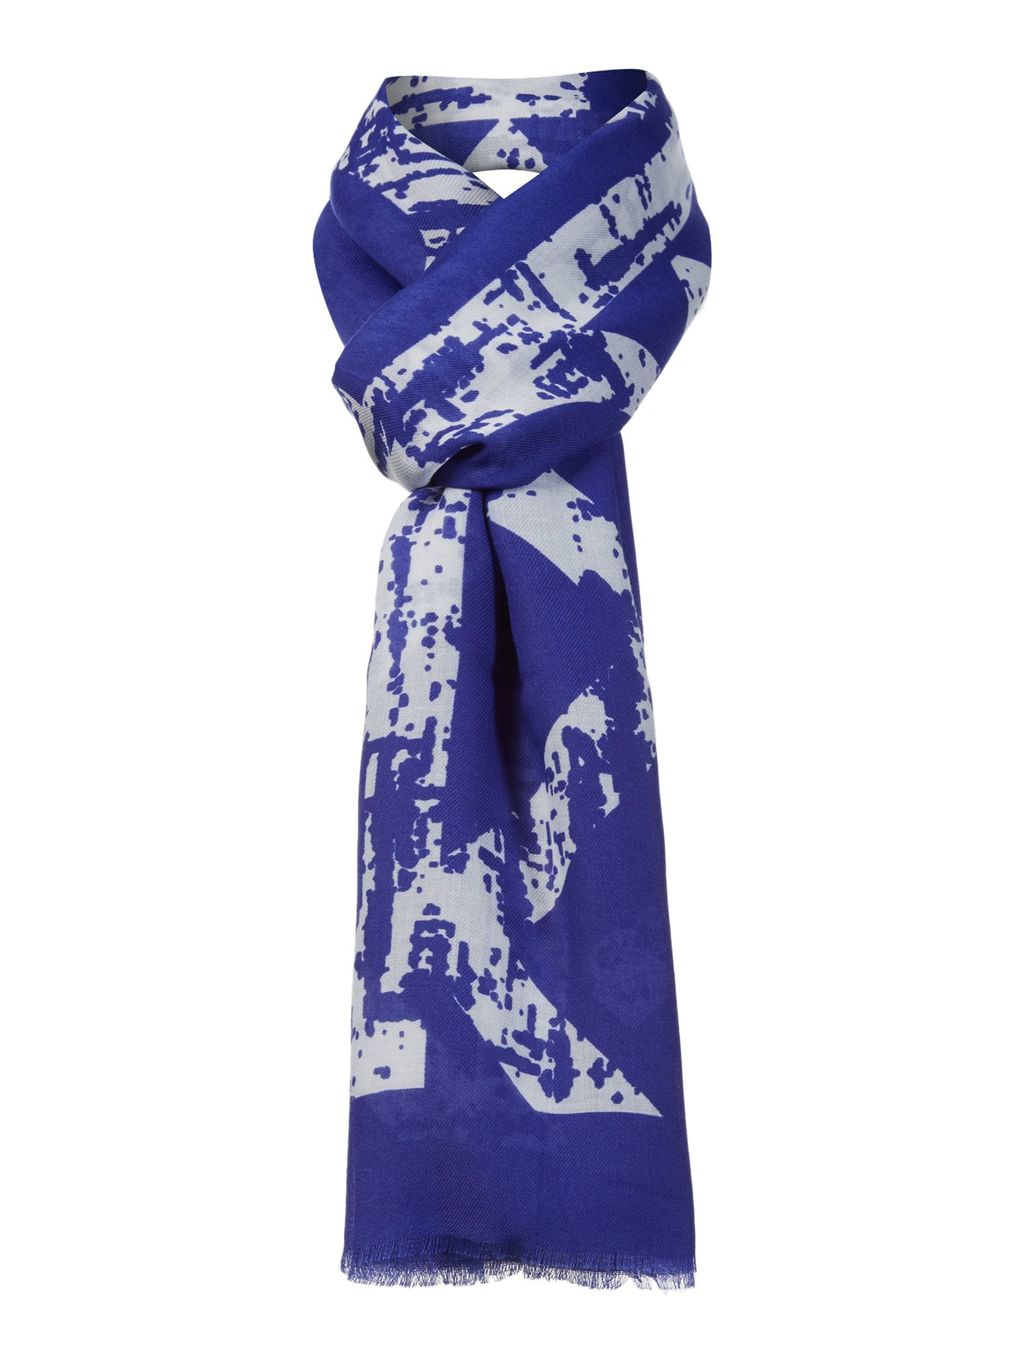 Neon Scarf, Cobalt - predominant colour: purple; occasions: casual, creative work; type of pattern: heavy; style: regular; size: standard; material: fabric; pattern: patterned/print; season: a/w 2015